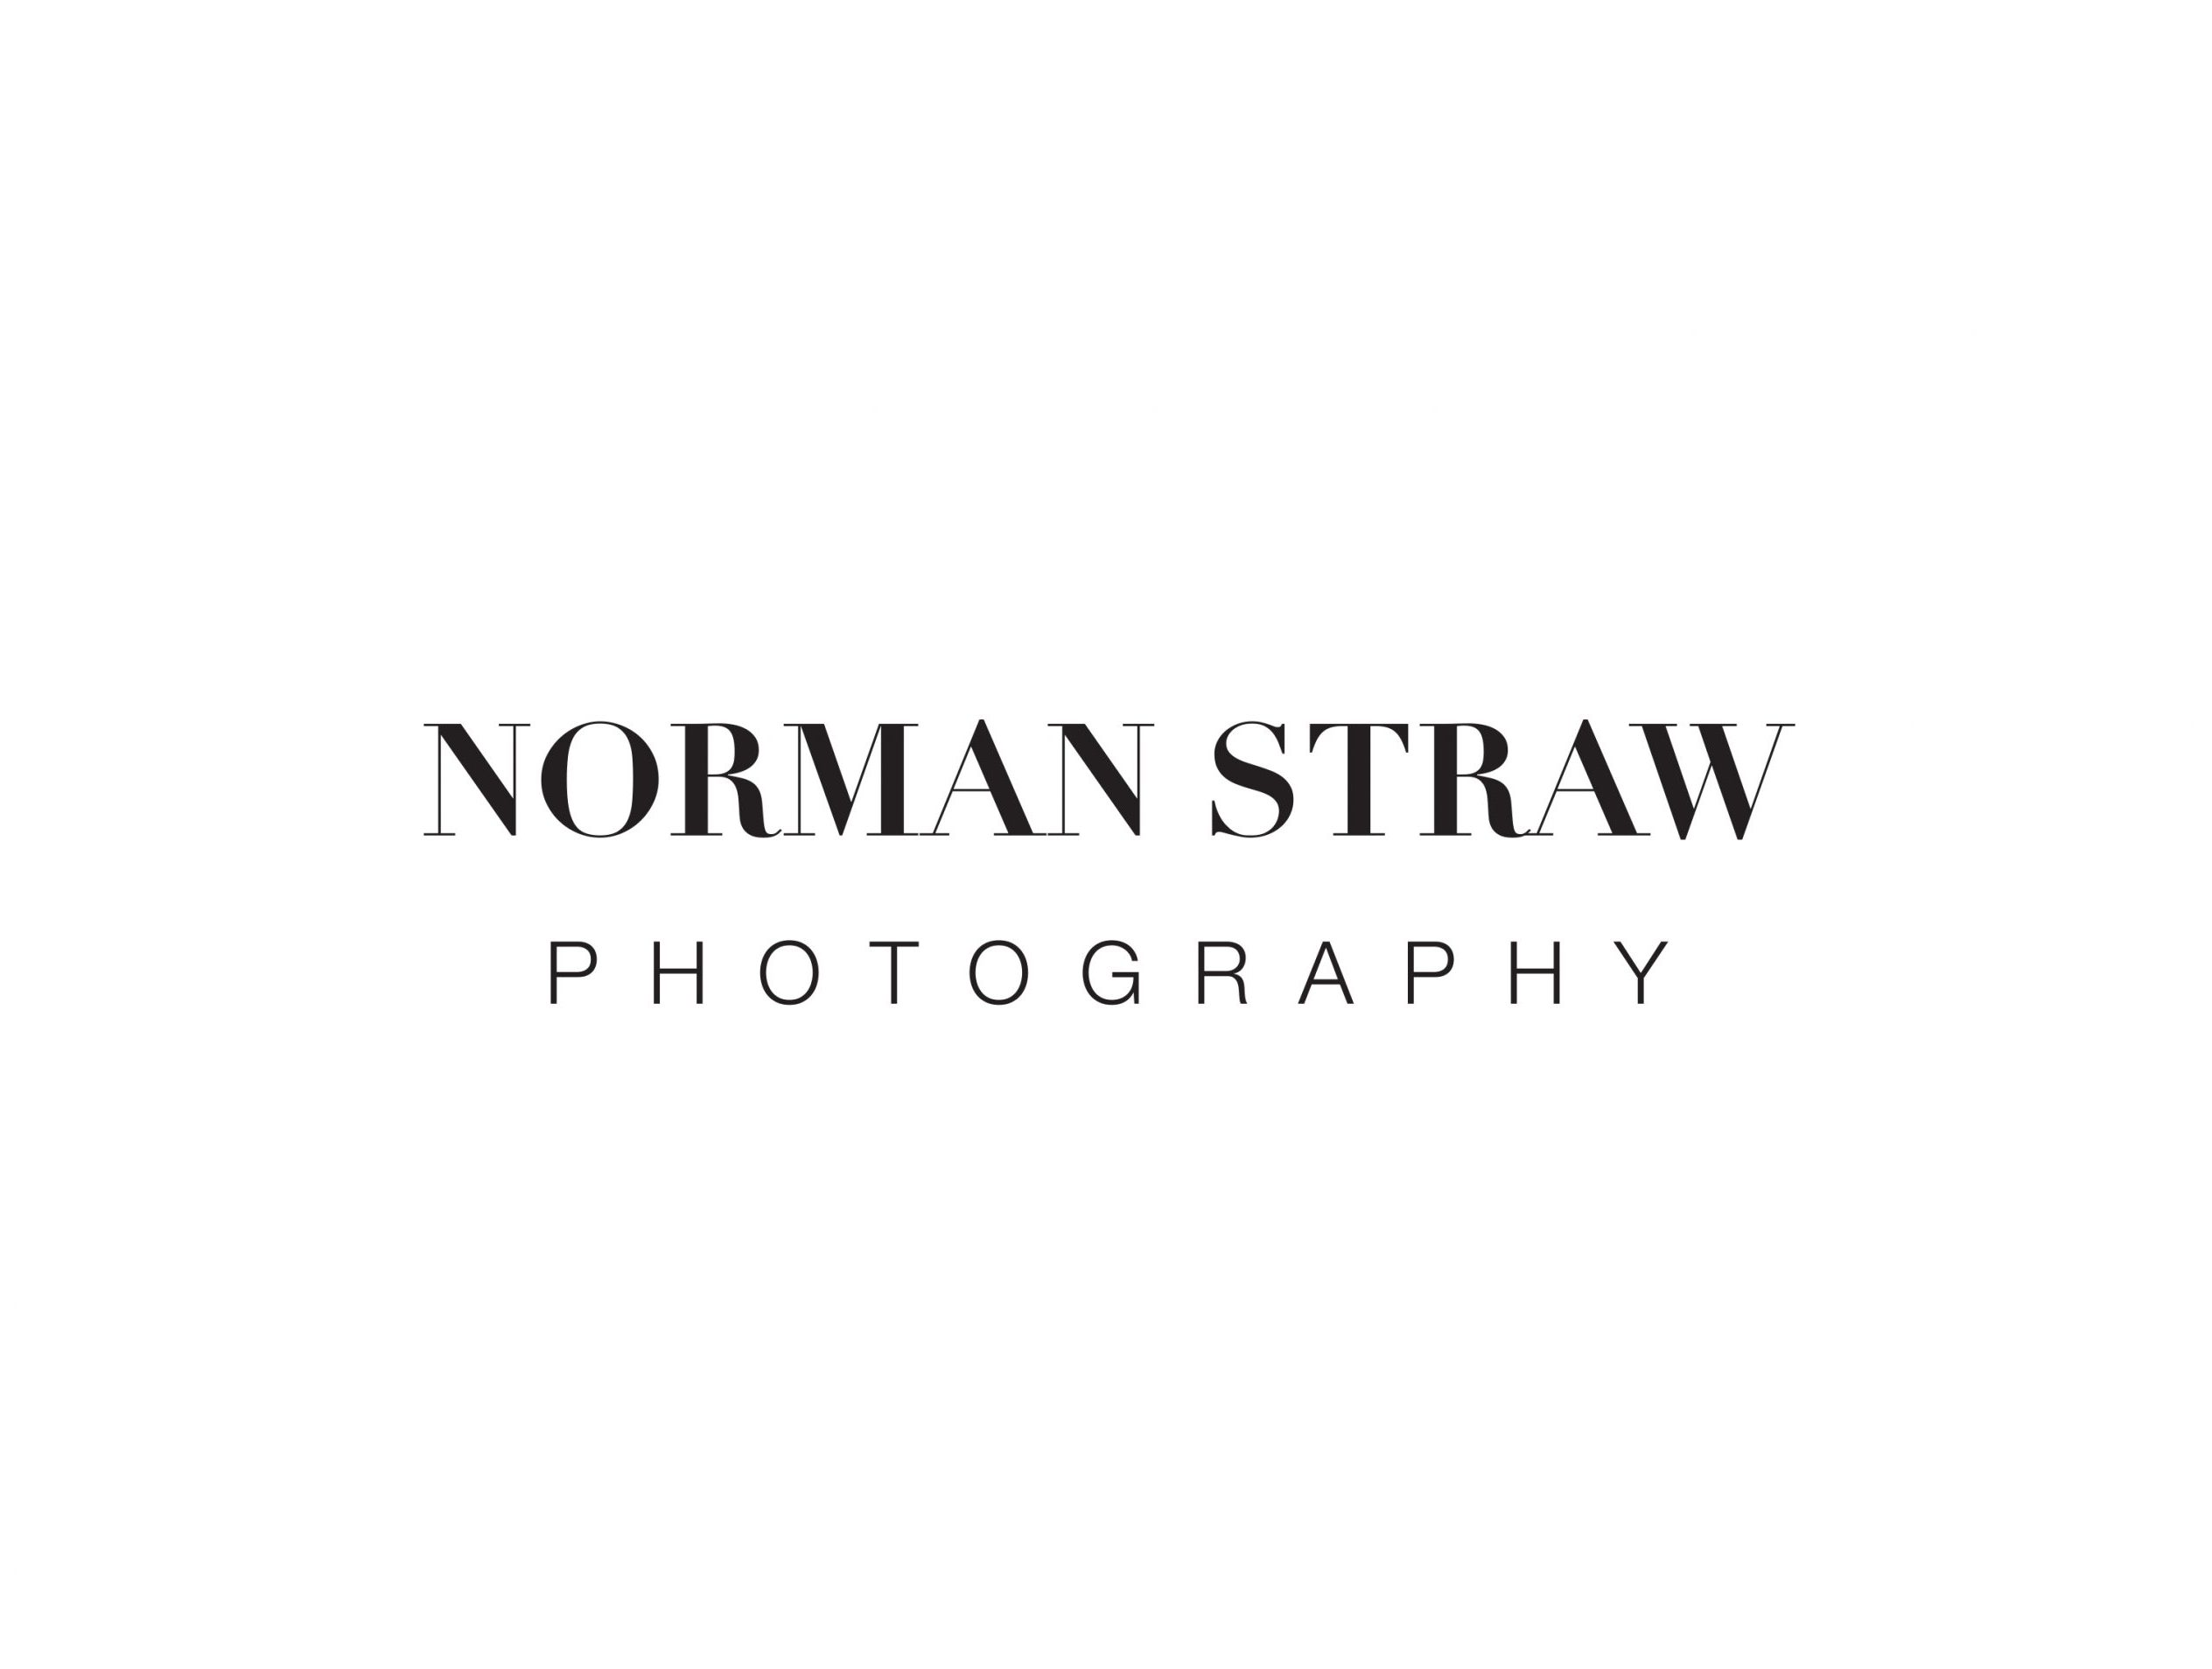 Norman Straw Photography